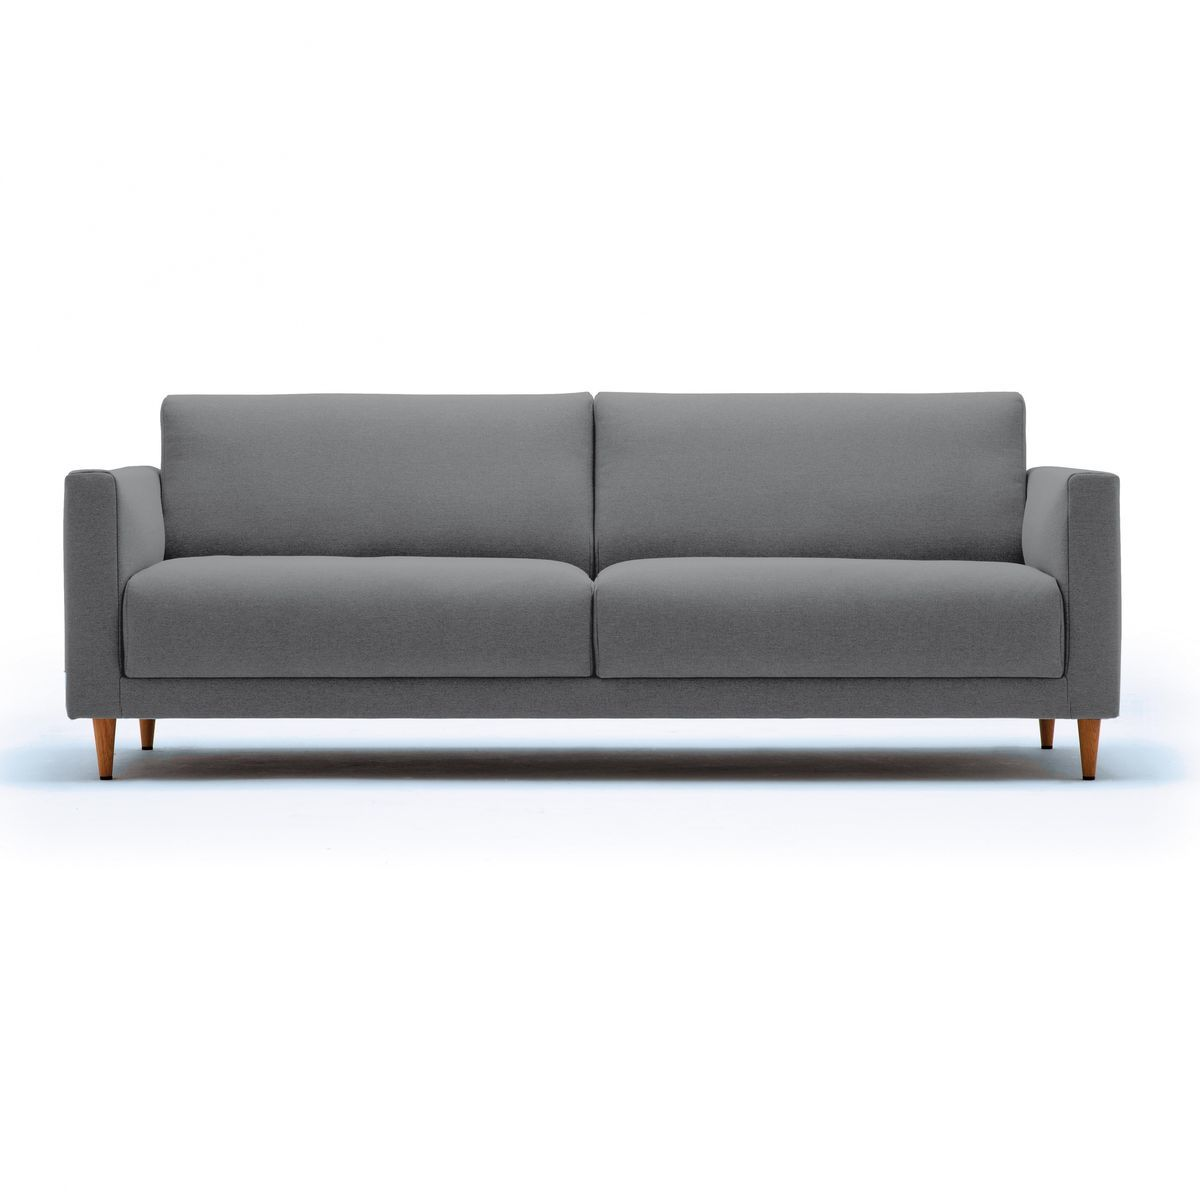 Freistil 141 3 seater sofa frame wood freistil rolf benz for Sofa benz rolf